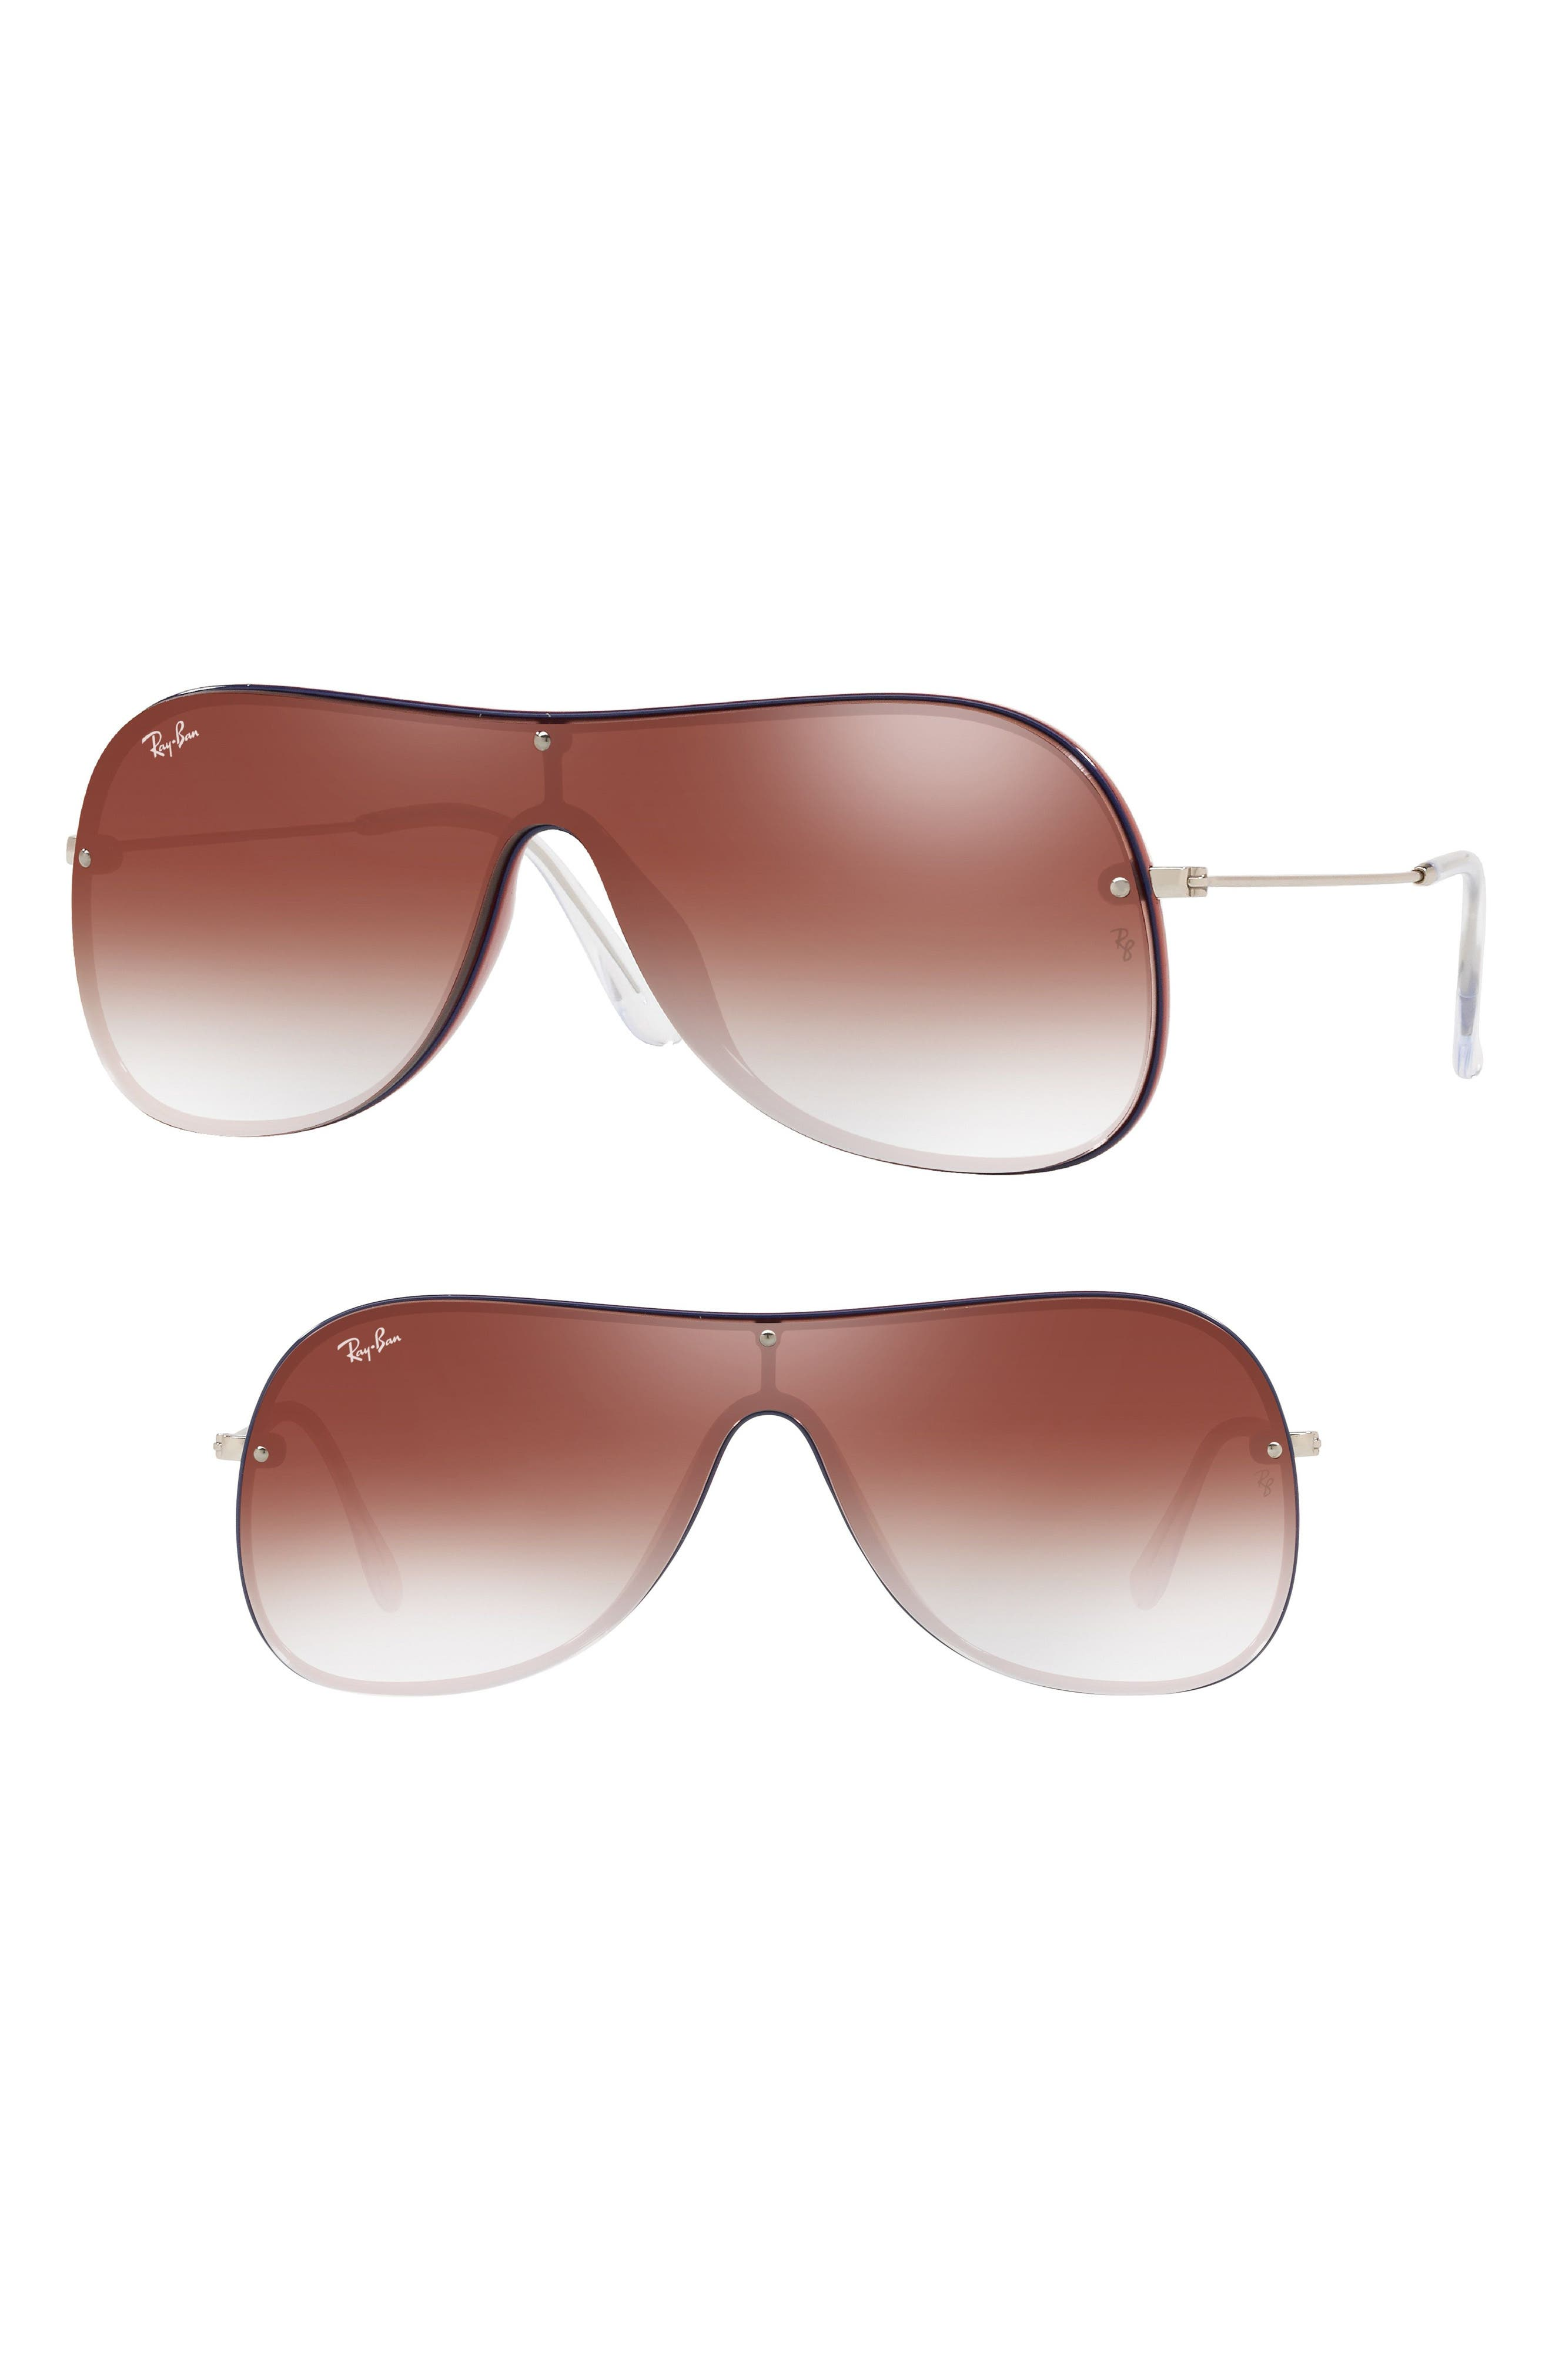 Highstreet 138mm Shield Sunglasses,                         Main,                         color, Red Gradient Mirror